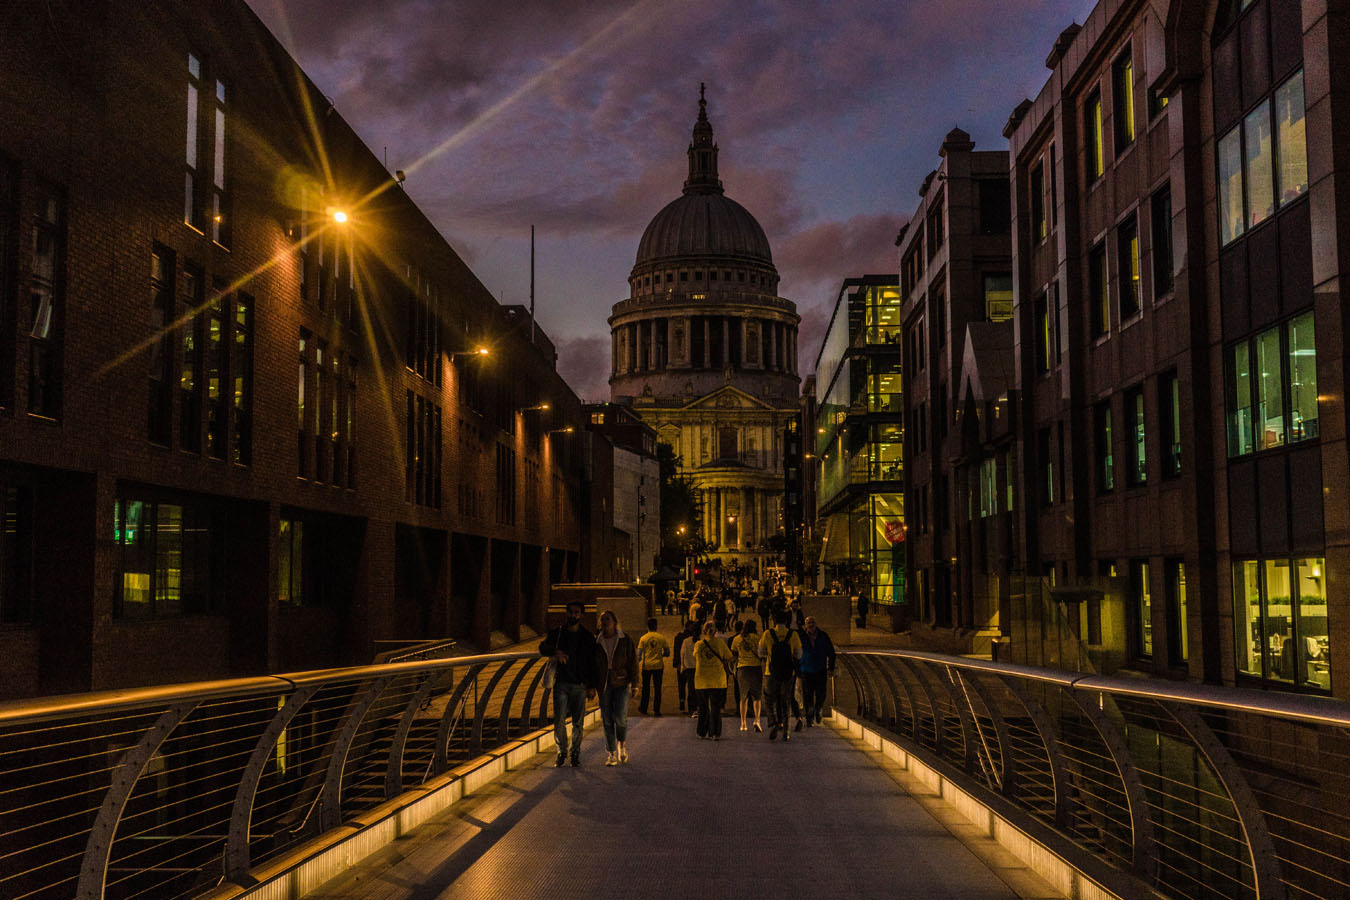 Night View of St. Paul's Cathedral London